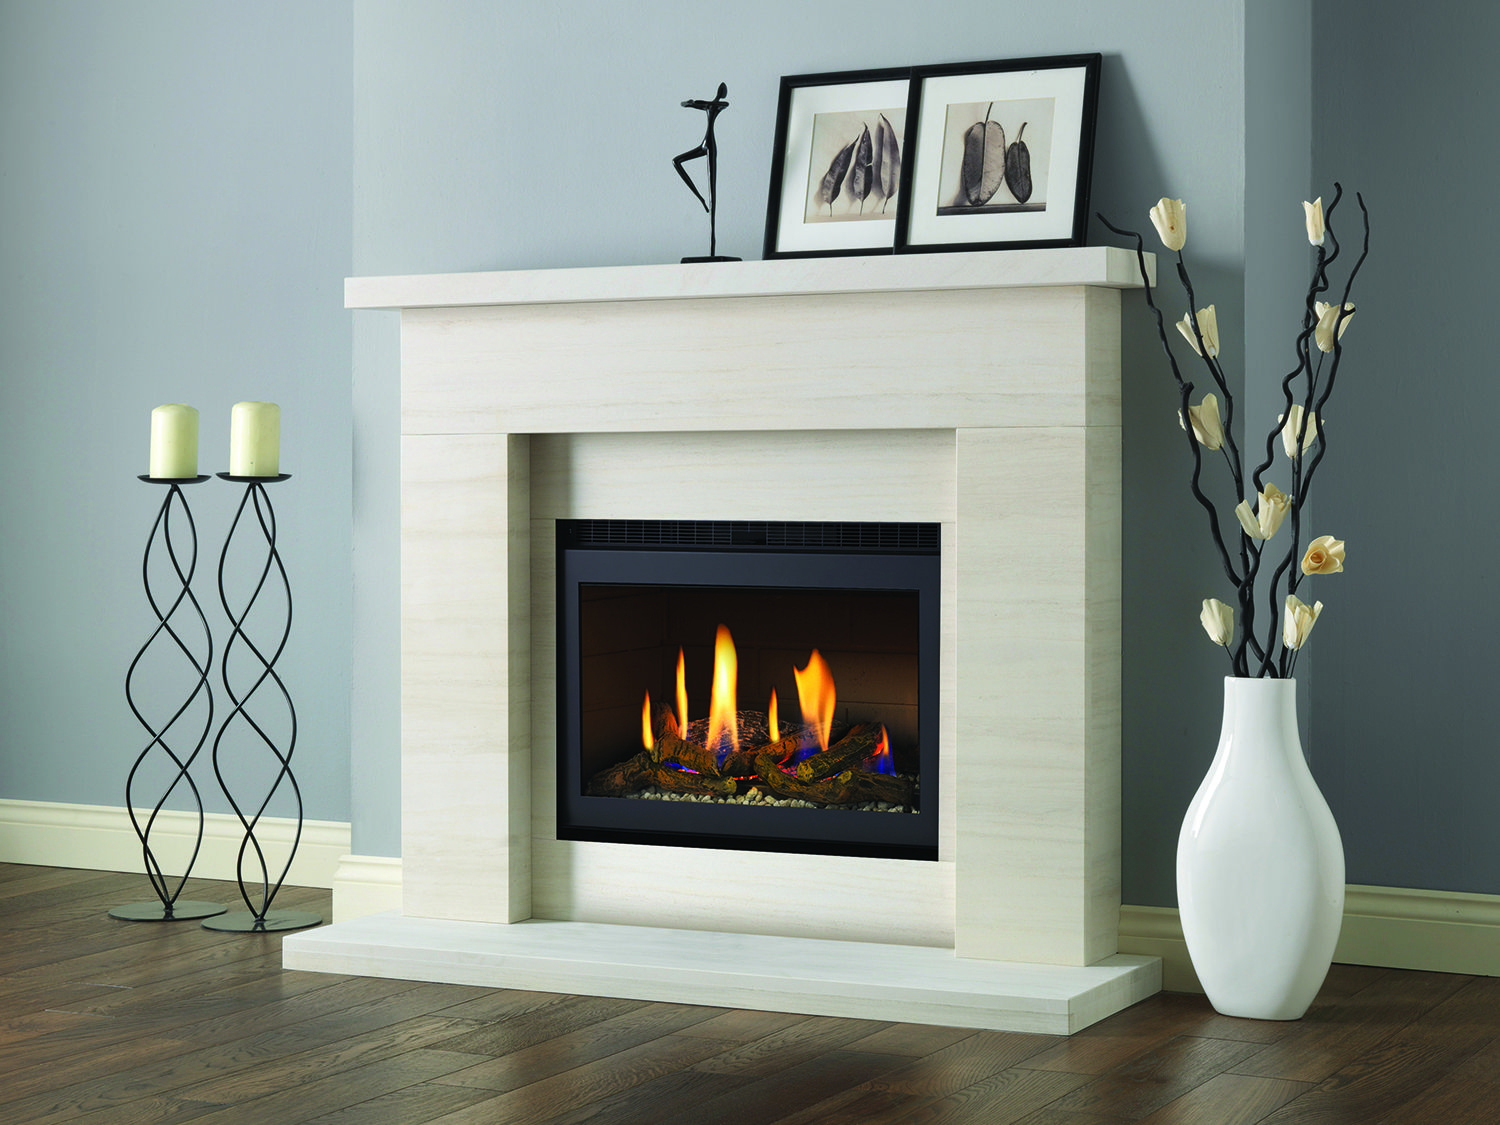 Firesu gas fires electric fires flueless fires and